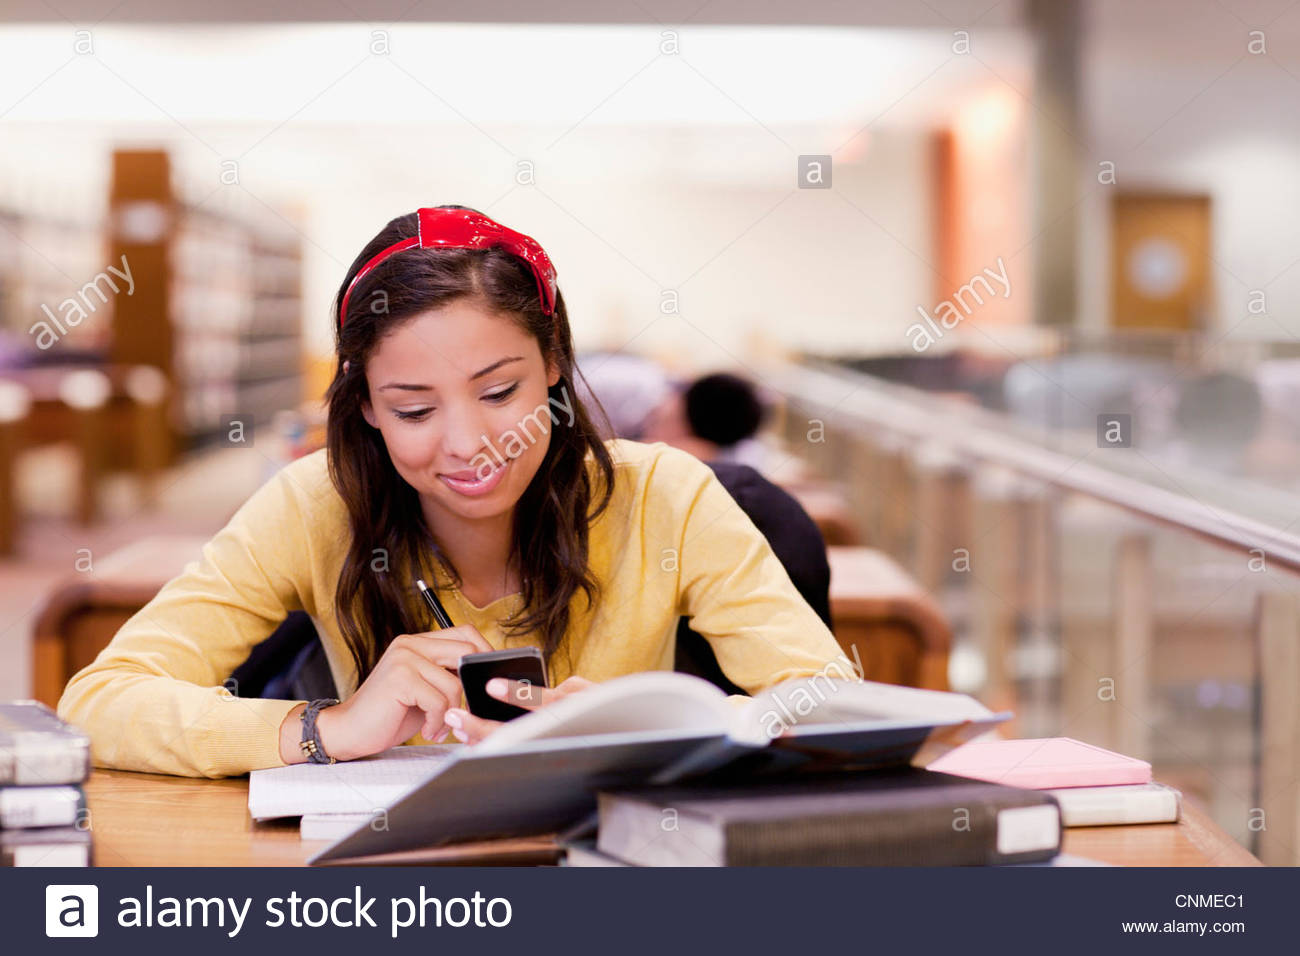 Student using cell phone and studying in library - Stock Image